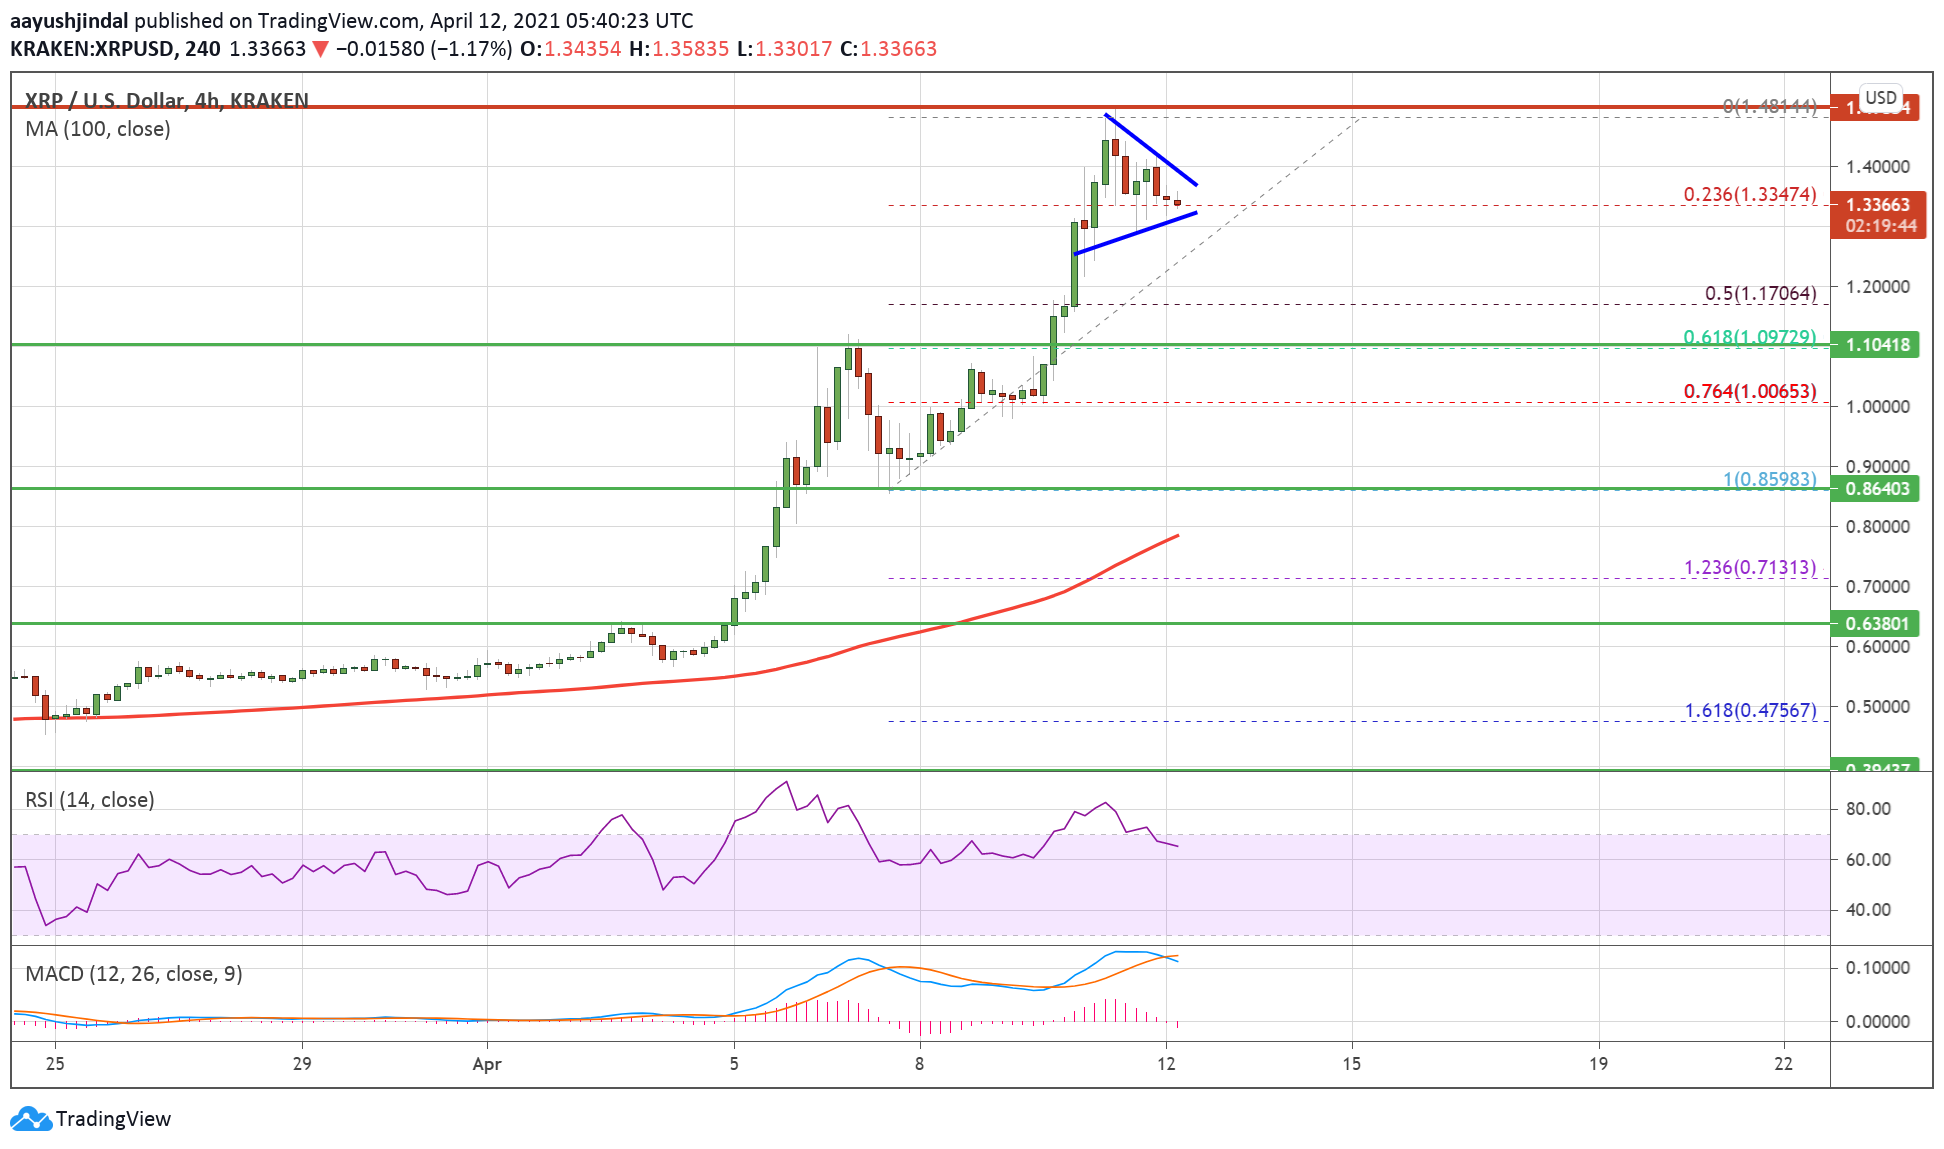 Charted: Ripple (XRP) Consolidates Gains, Why Rally Isn't Over Yet